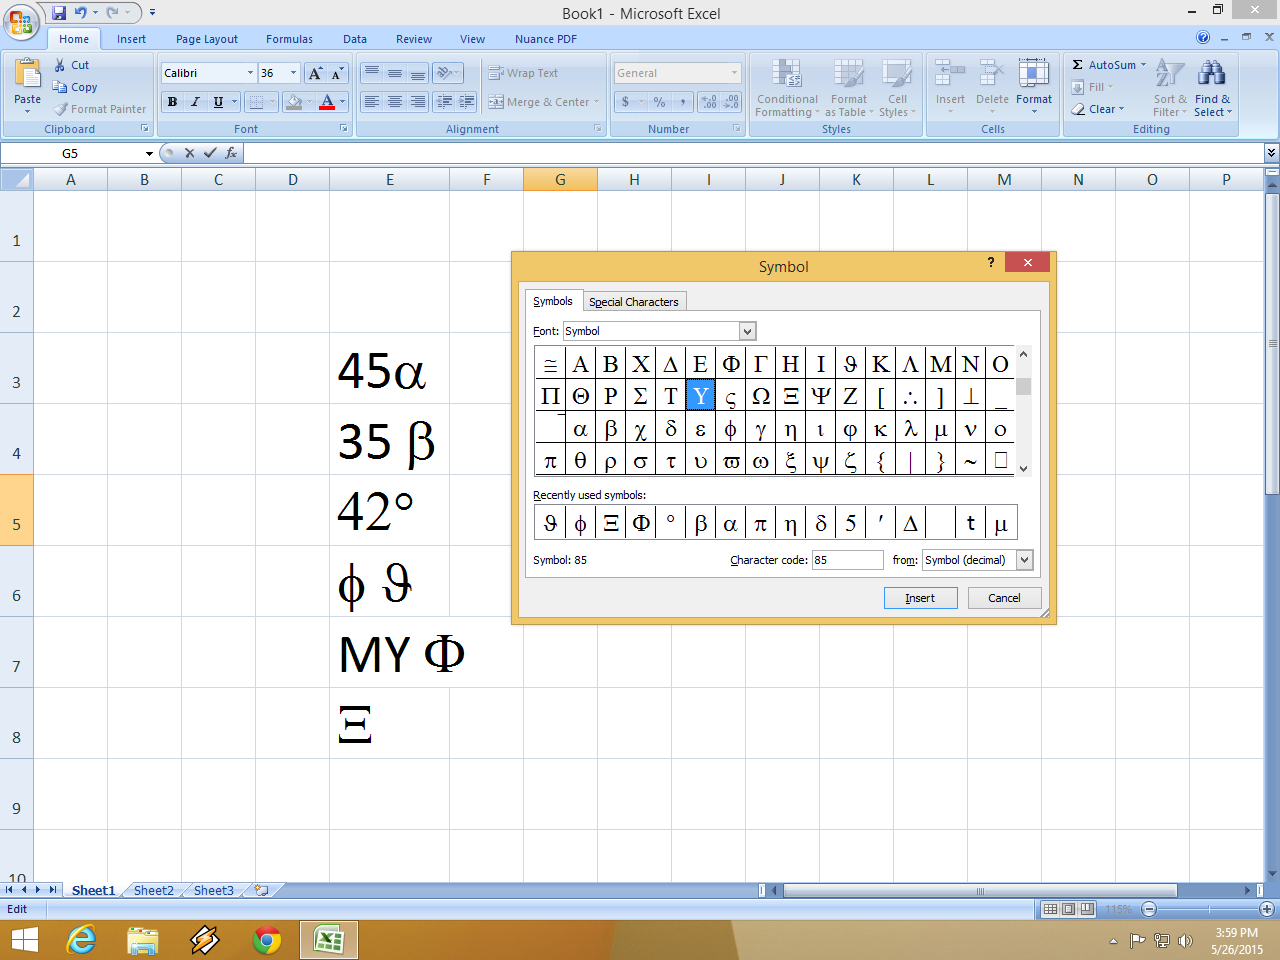 Learn New Things Shortcut Key For Insert Symbol In Ms Excel